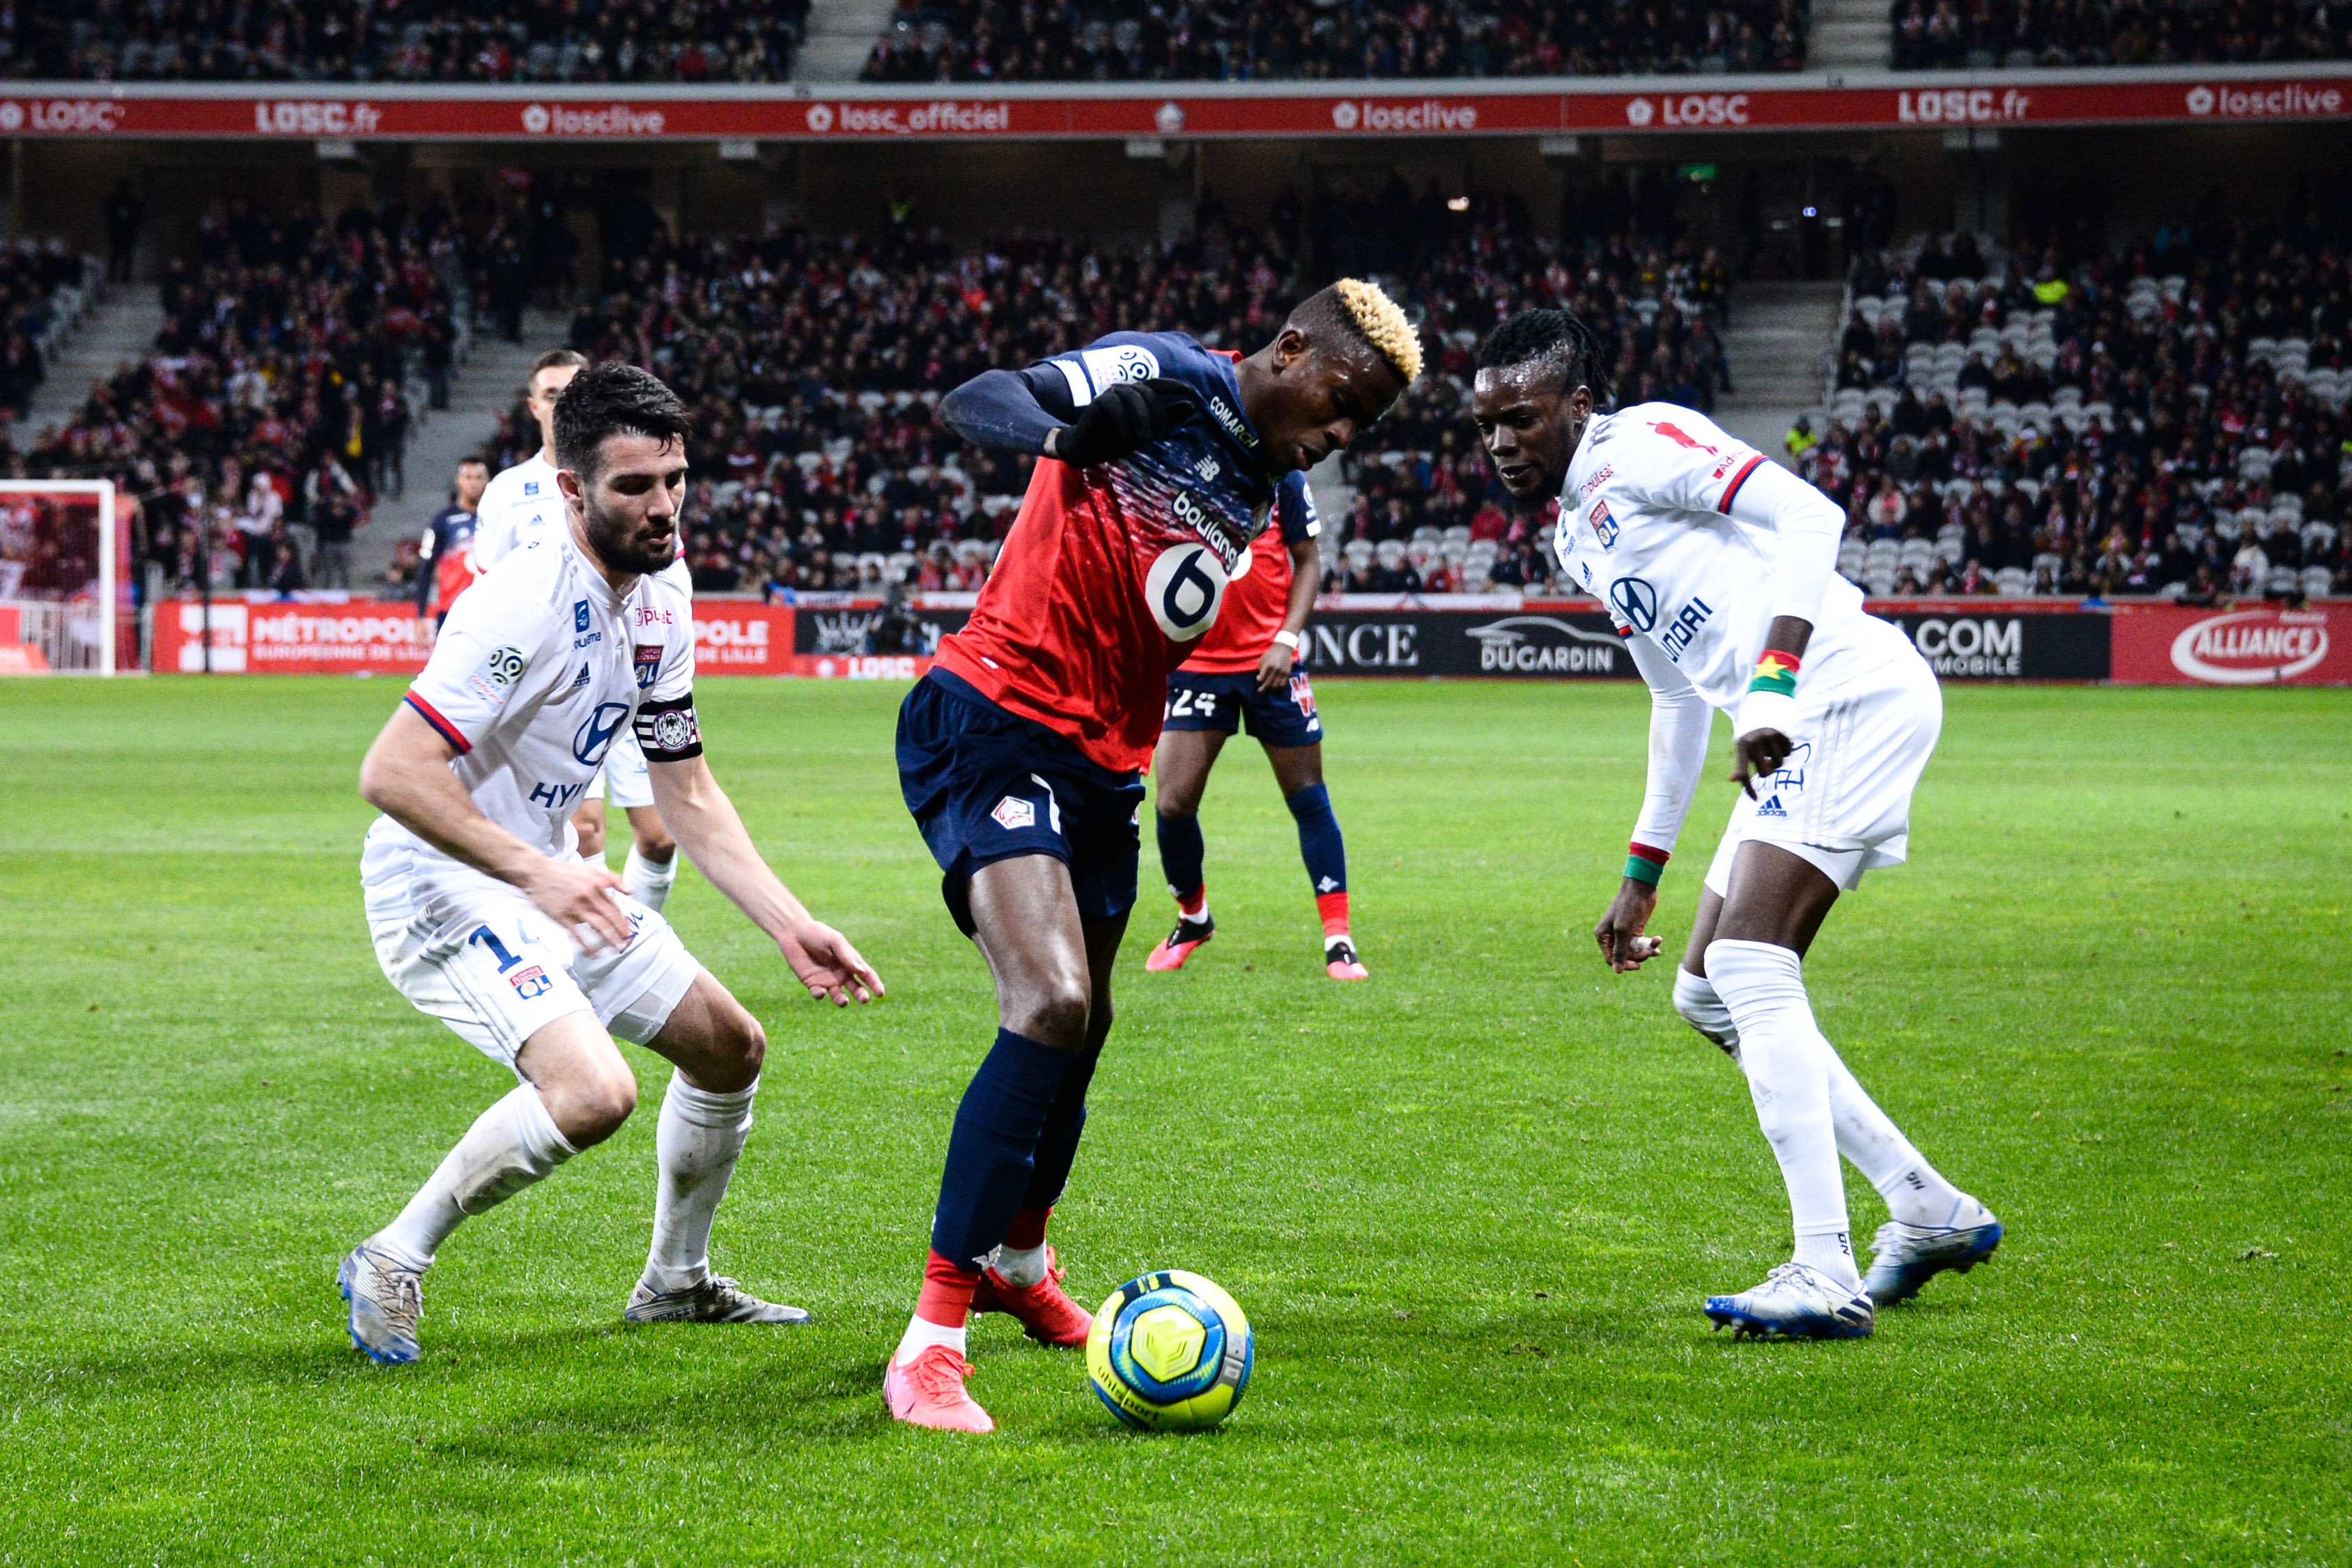 Football - Ligue 1 - La LFP vise une reprise de la saison de Ligue 1 le 17 juin